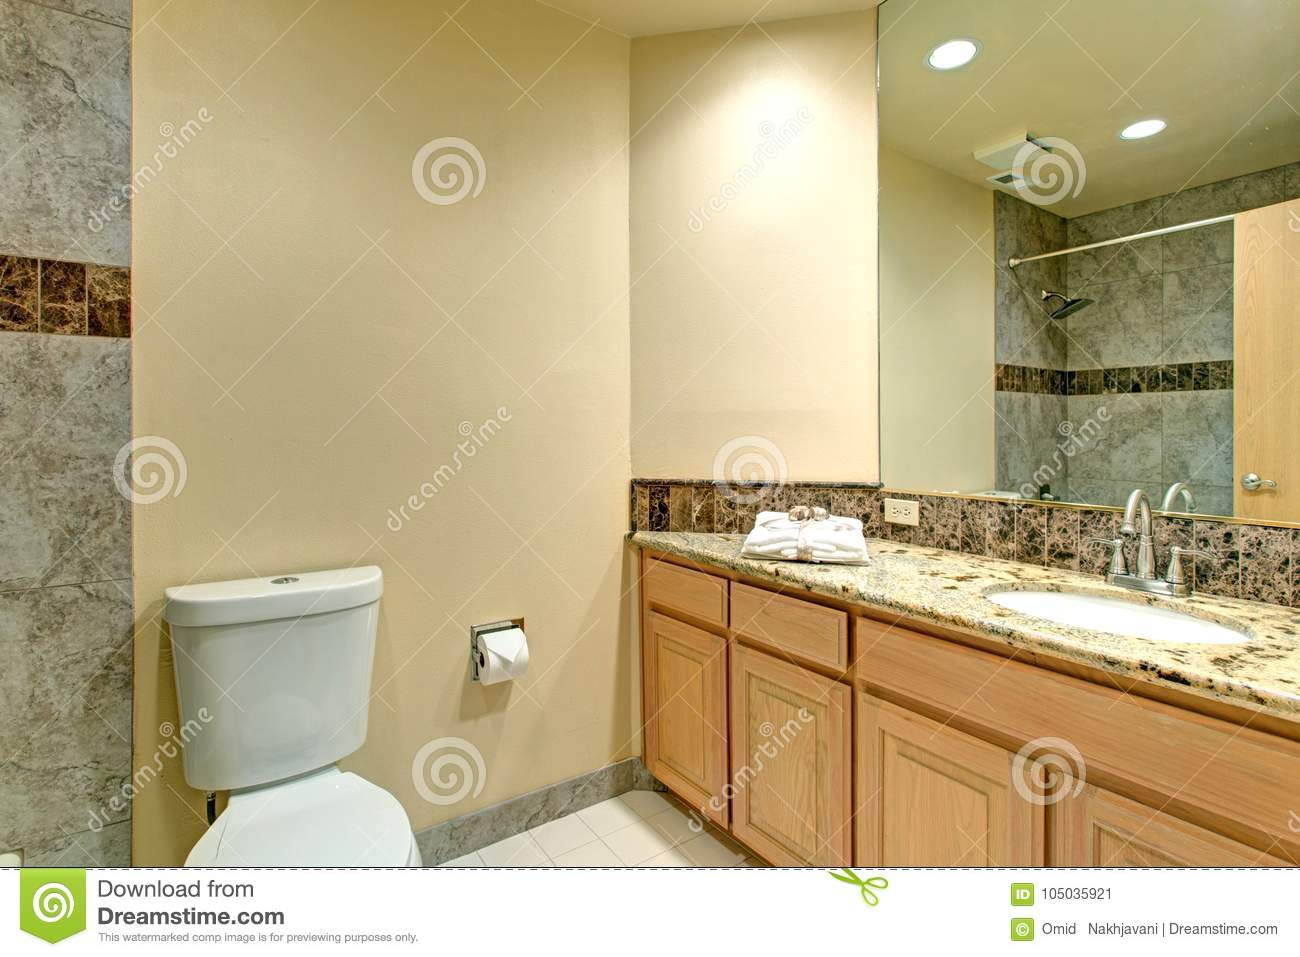 Neutral Bathroom Design With Green Marble Tile Stock Image - Image ...